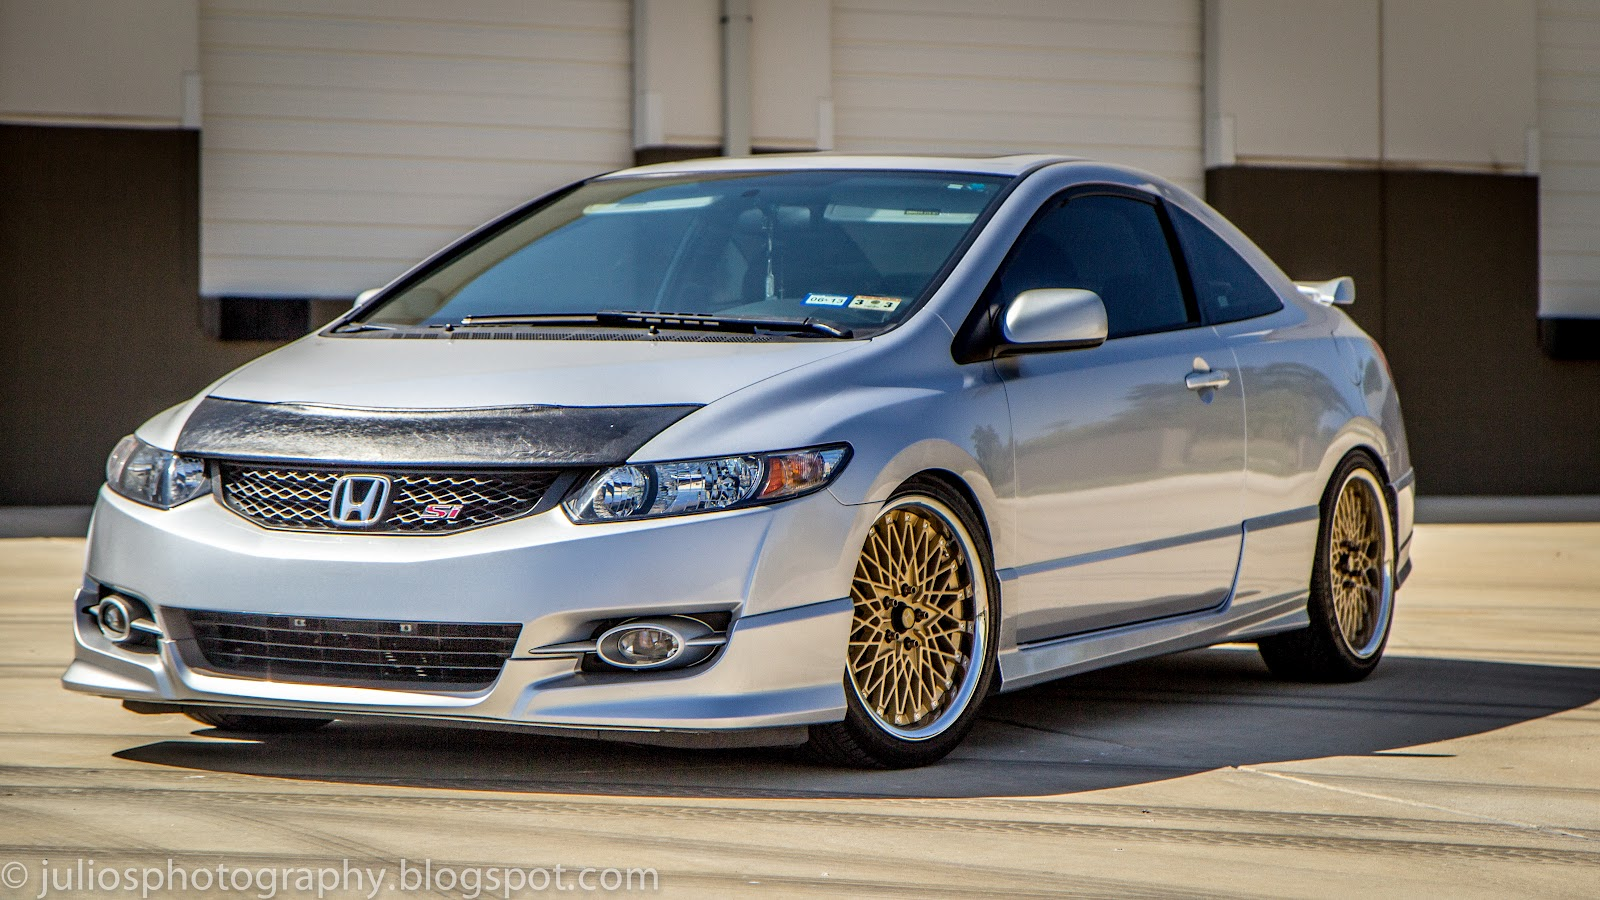 Honda Civic Si Custom | Julio's Photography